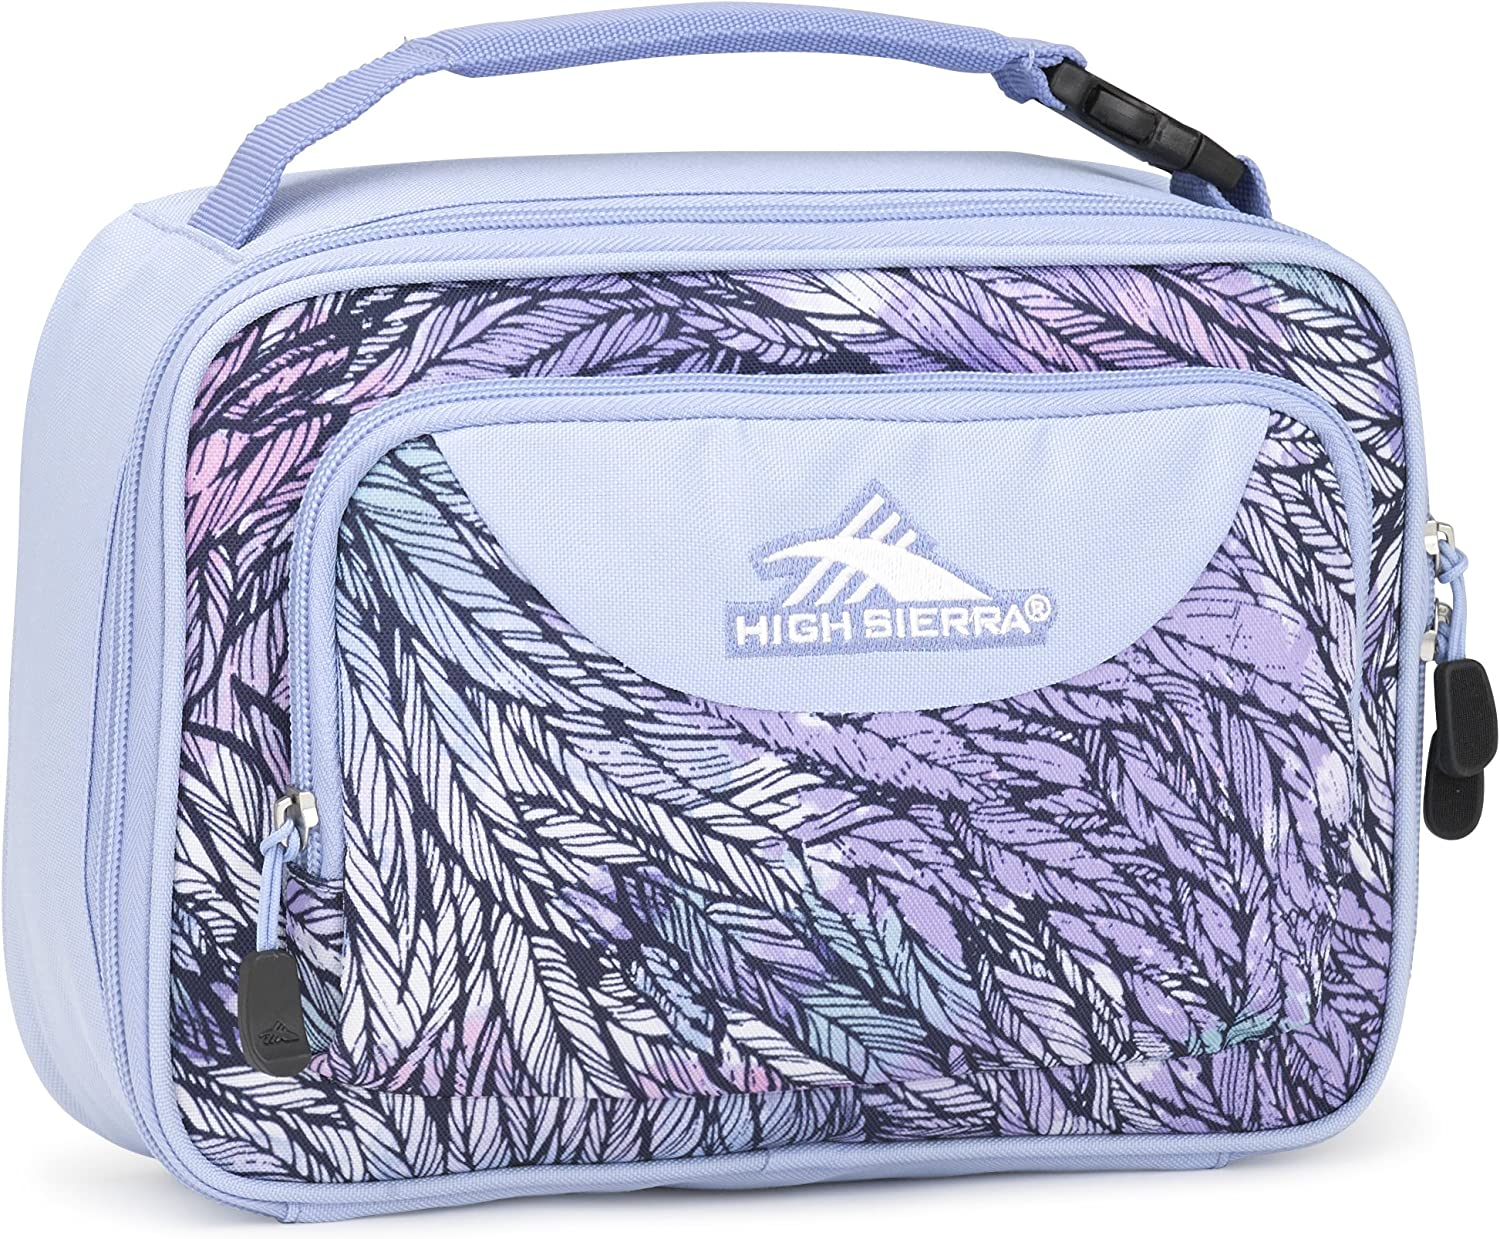 High Sierra Single Compartment Lunch Bag, One Size, Feather Spectre/Powder Blue